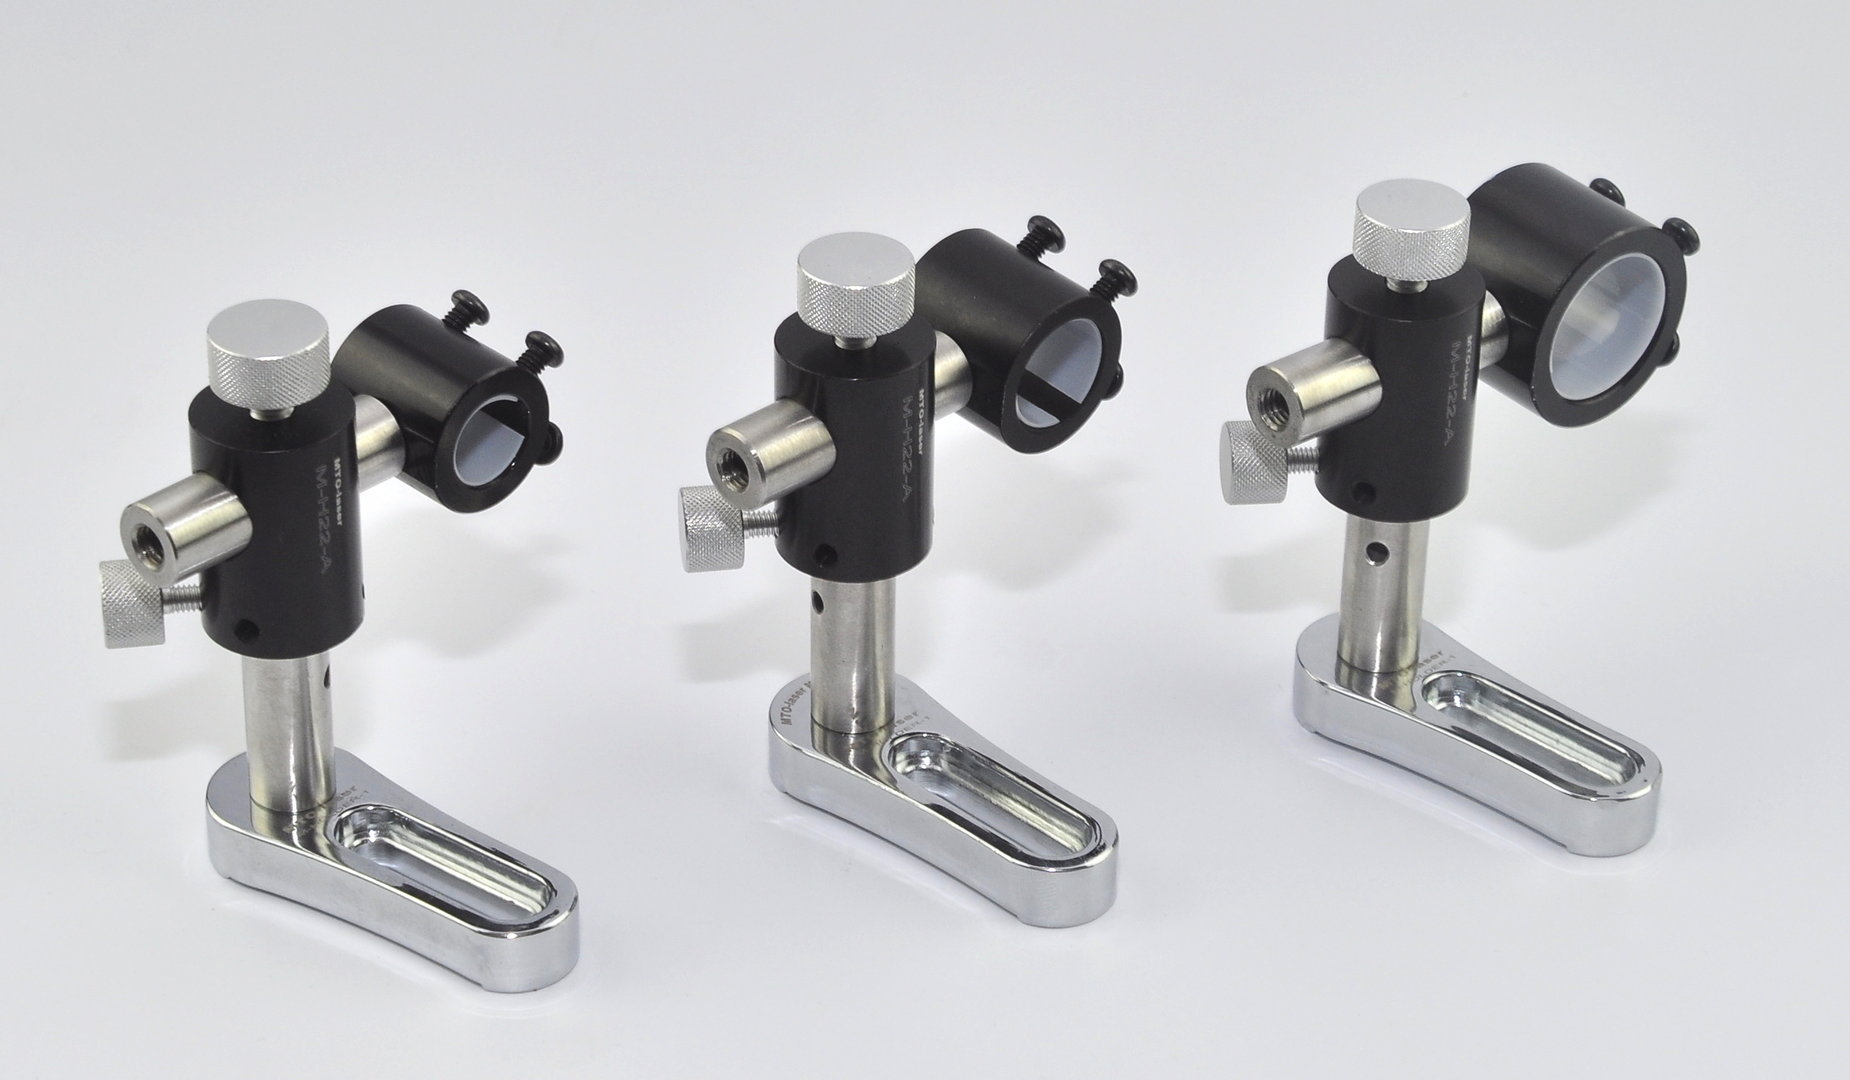 Adjustable Mounts for 12mm, 16mm, 18mm and 22mm Laser Modules